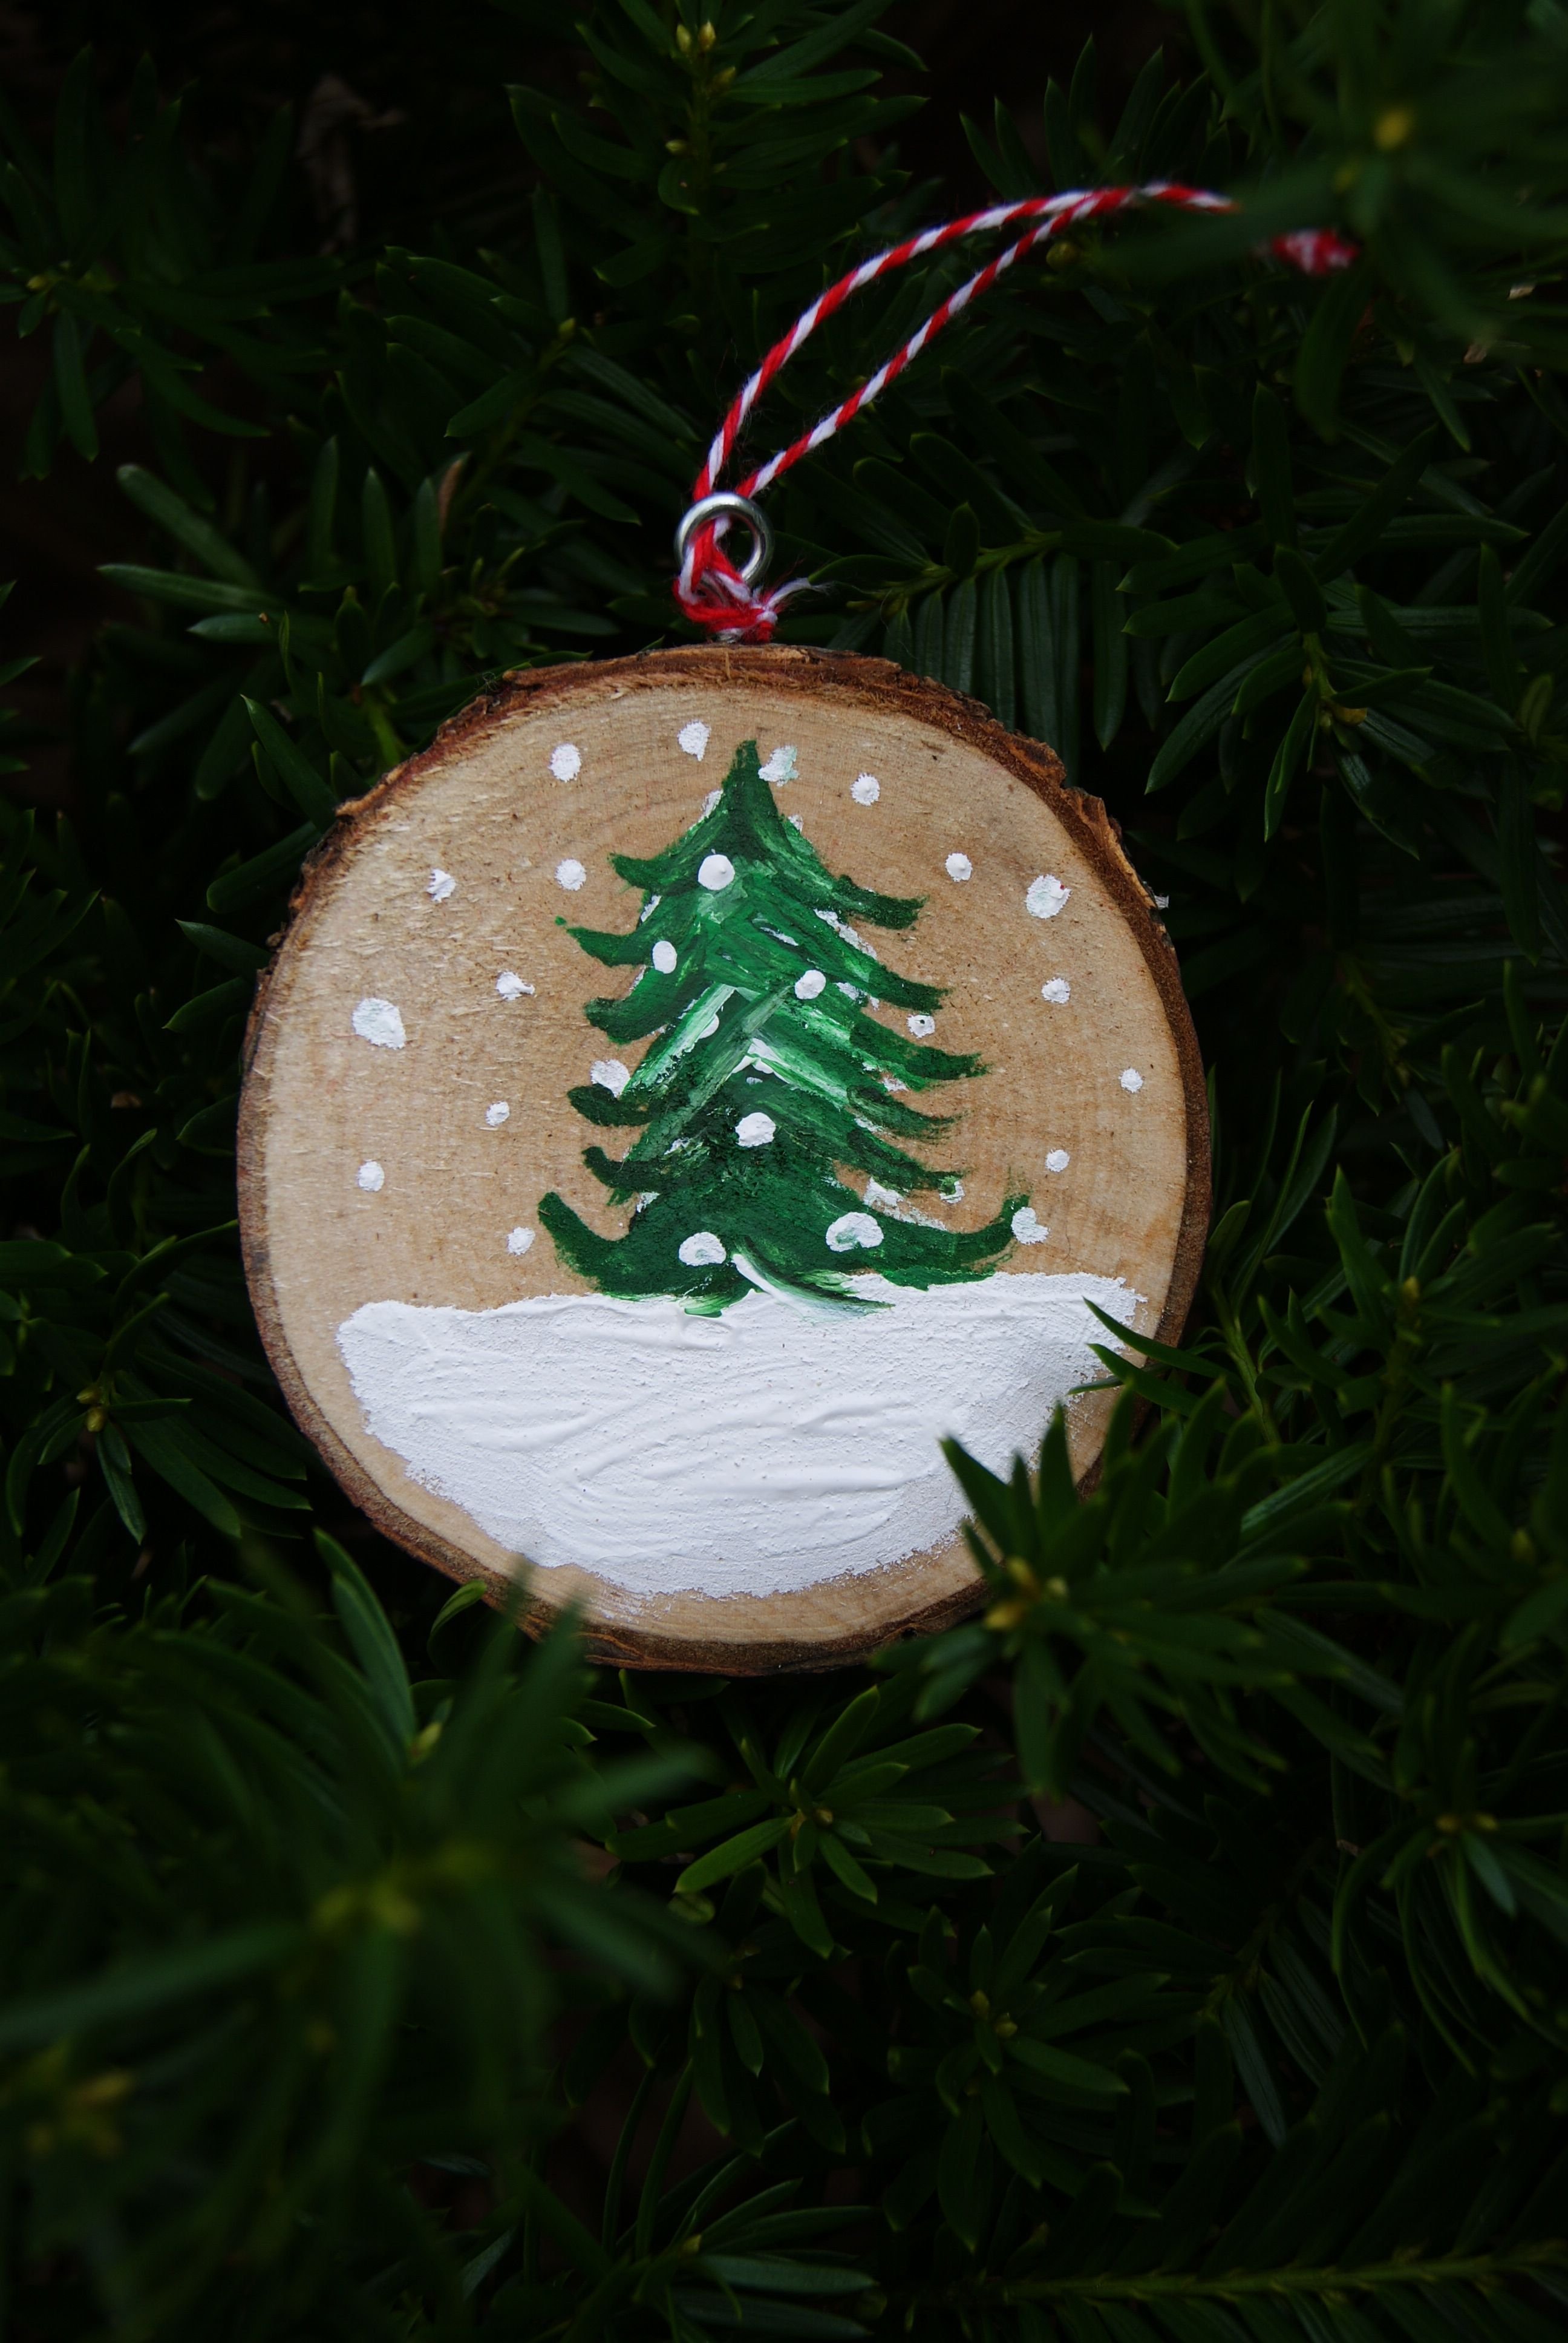 Pin By Lacoste On Activite Boule De Noel In 2020 Painted Christmas Ornaments Christmas Ornament Crafts Wood Christmas Ornaments